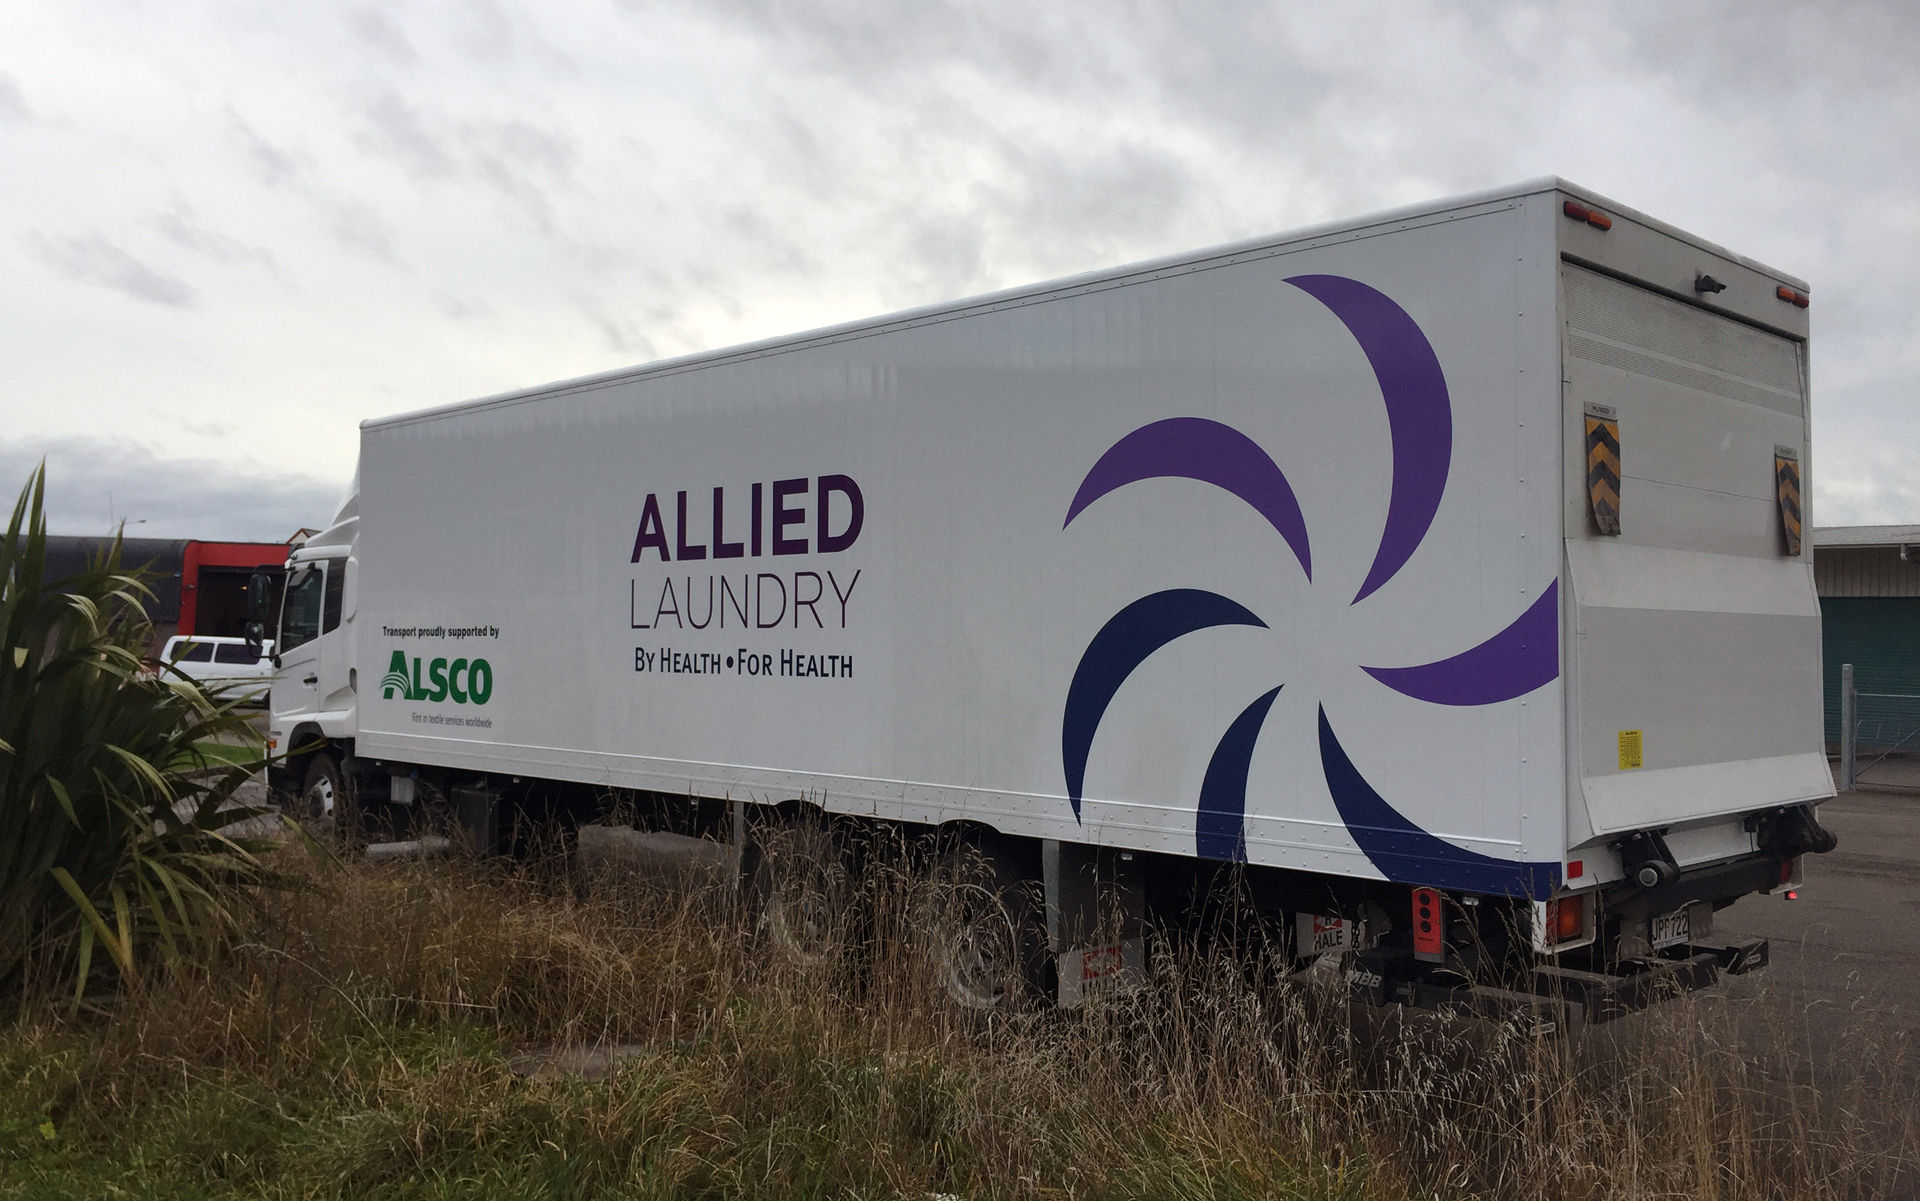 Allied Laundry - Freight Truck